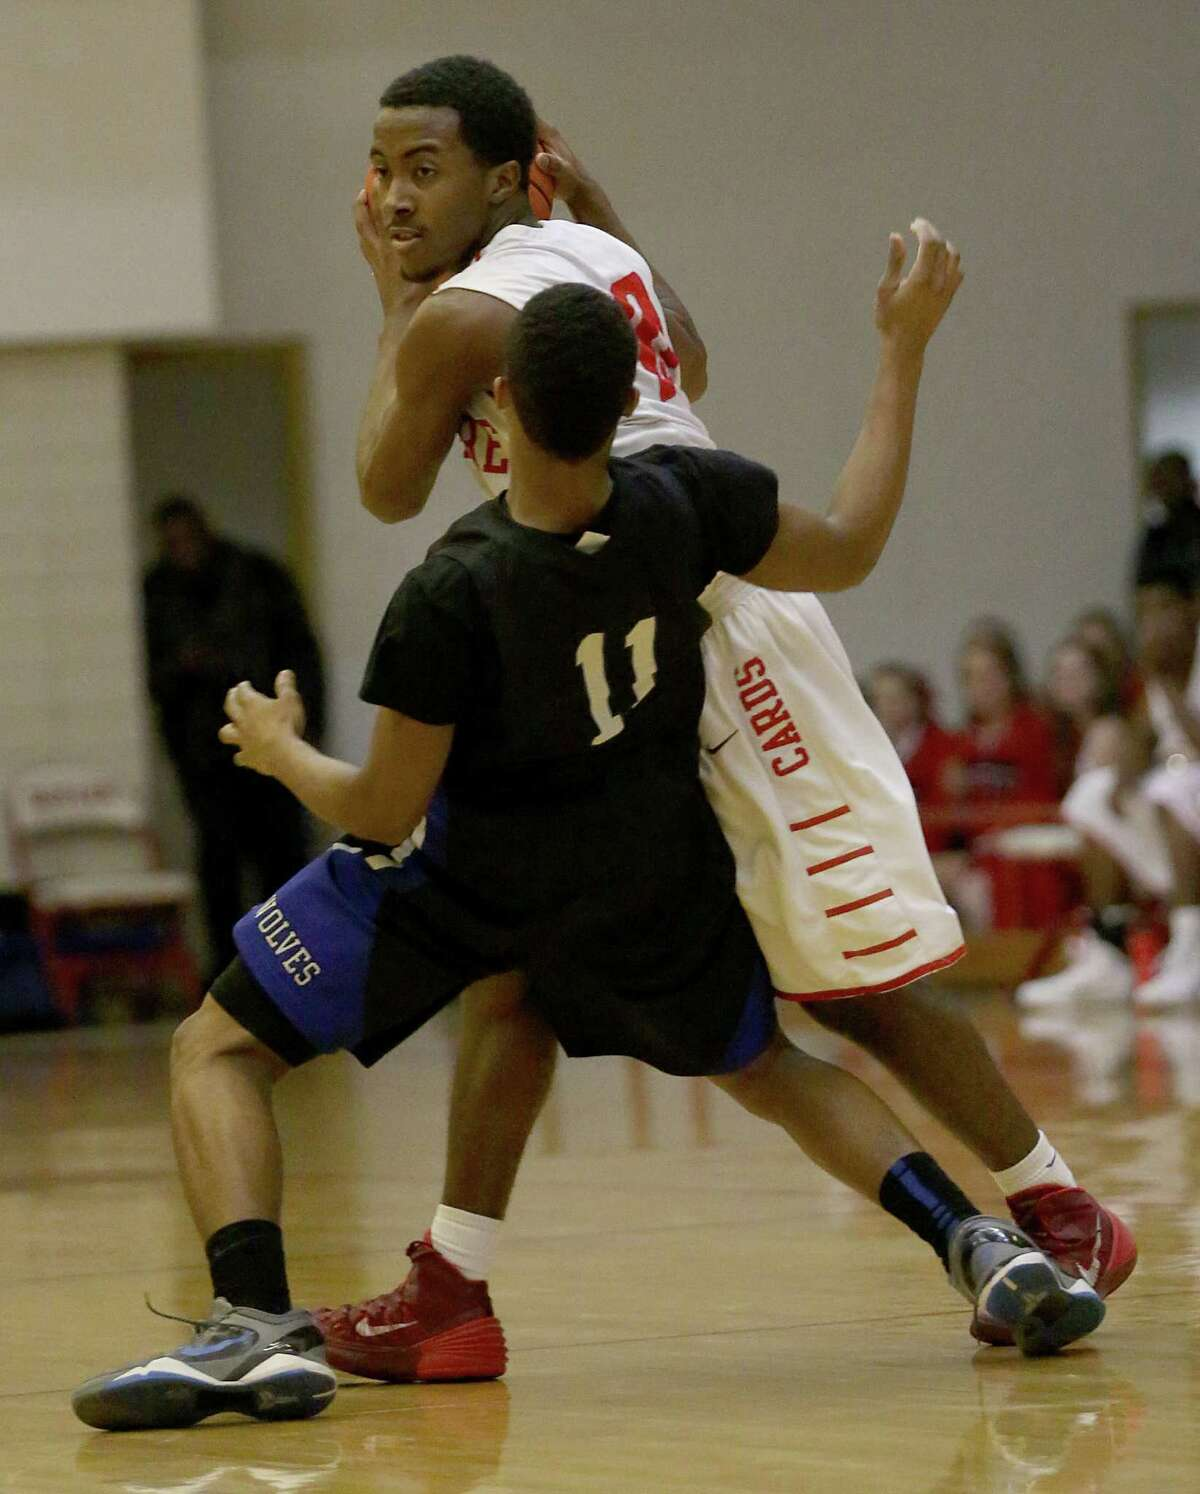 1/17/14: Bellaires' Jarren Greenwood (10) defends the ball from Westsides' Sherman Coleman (11) in a high school basketball game at Butler Field House in Houston, Texas. Westside won in overtime 55 to 50.